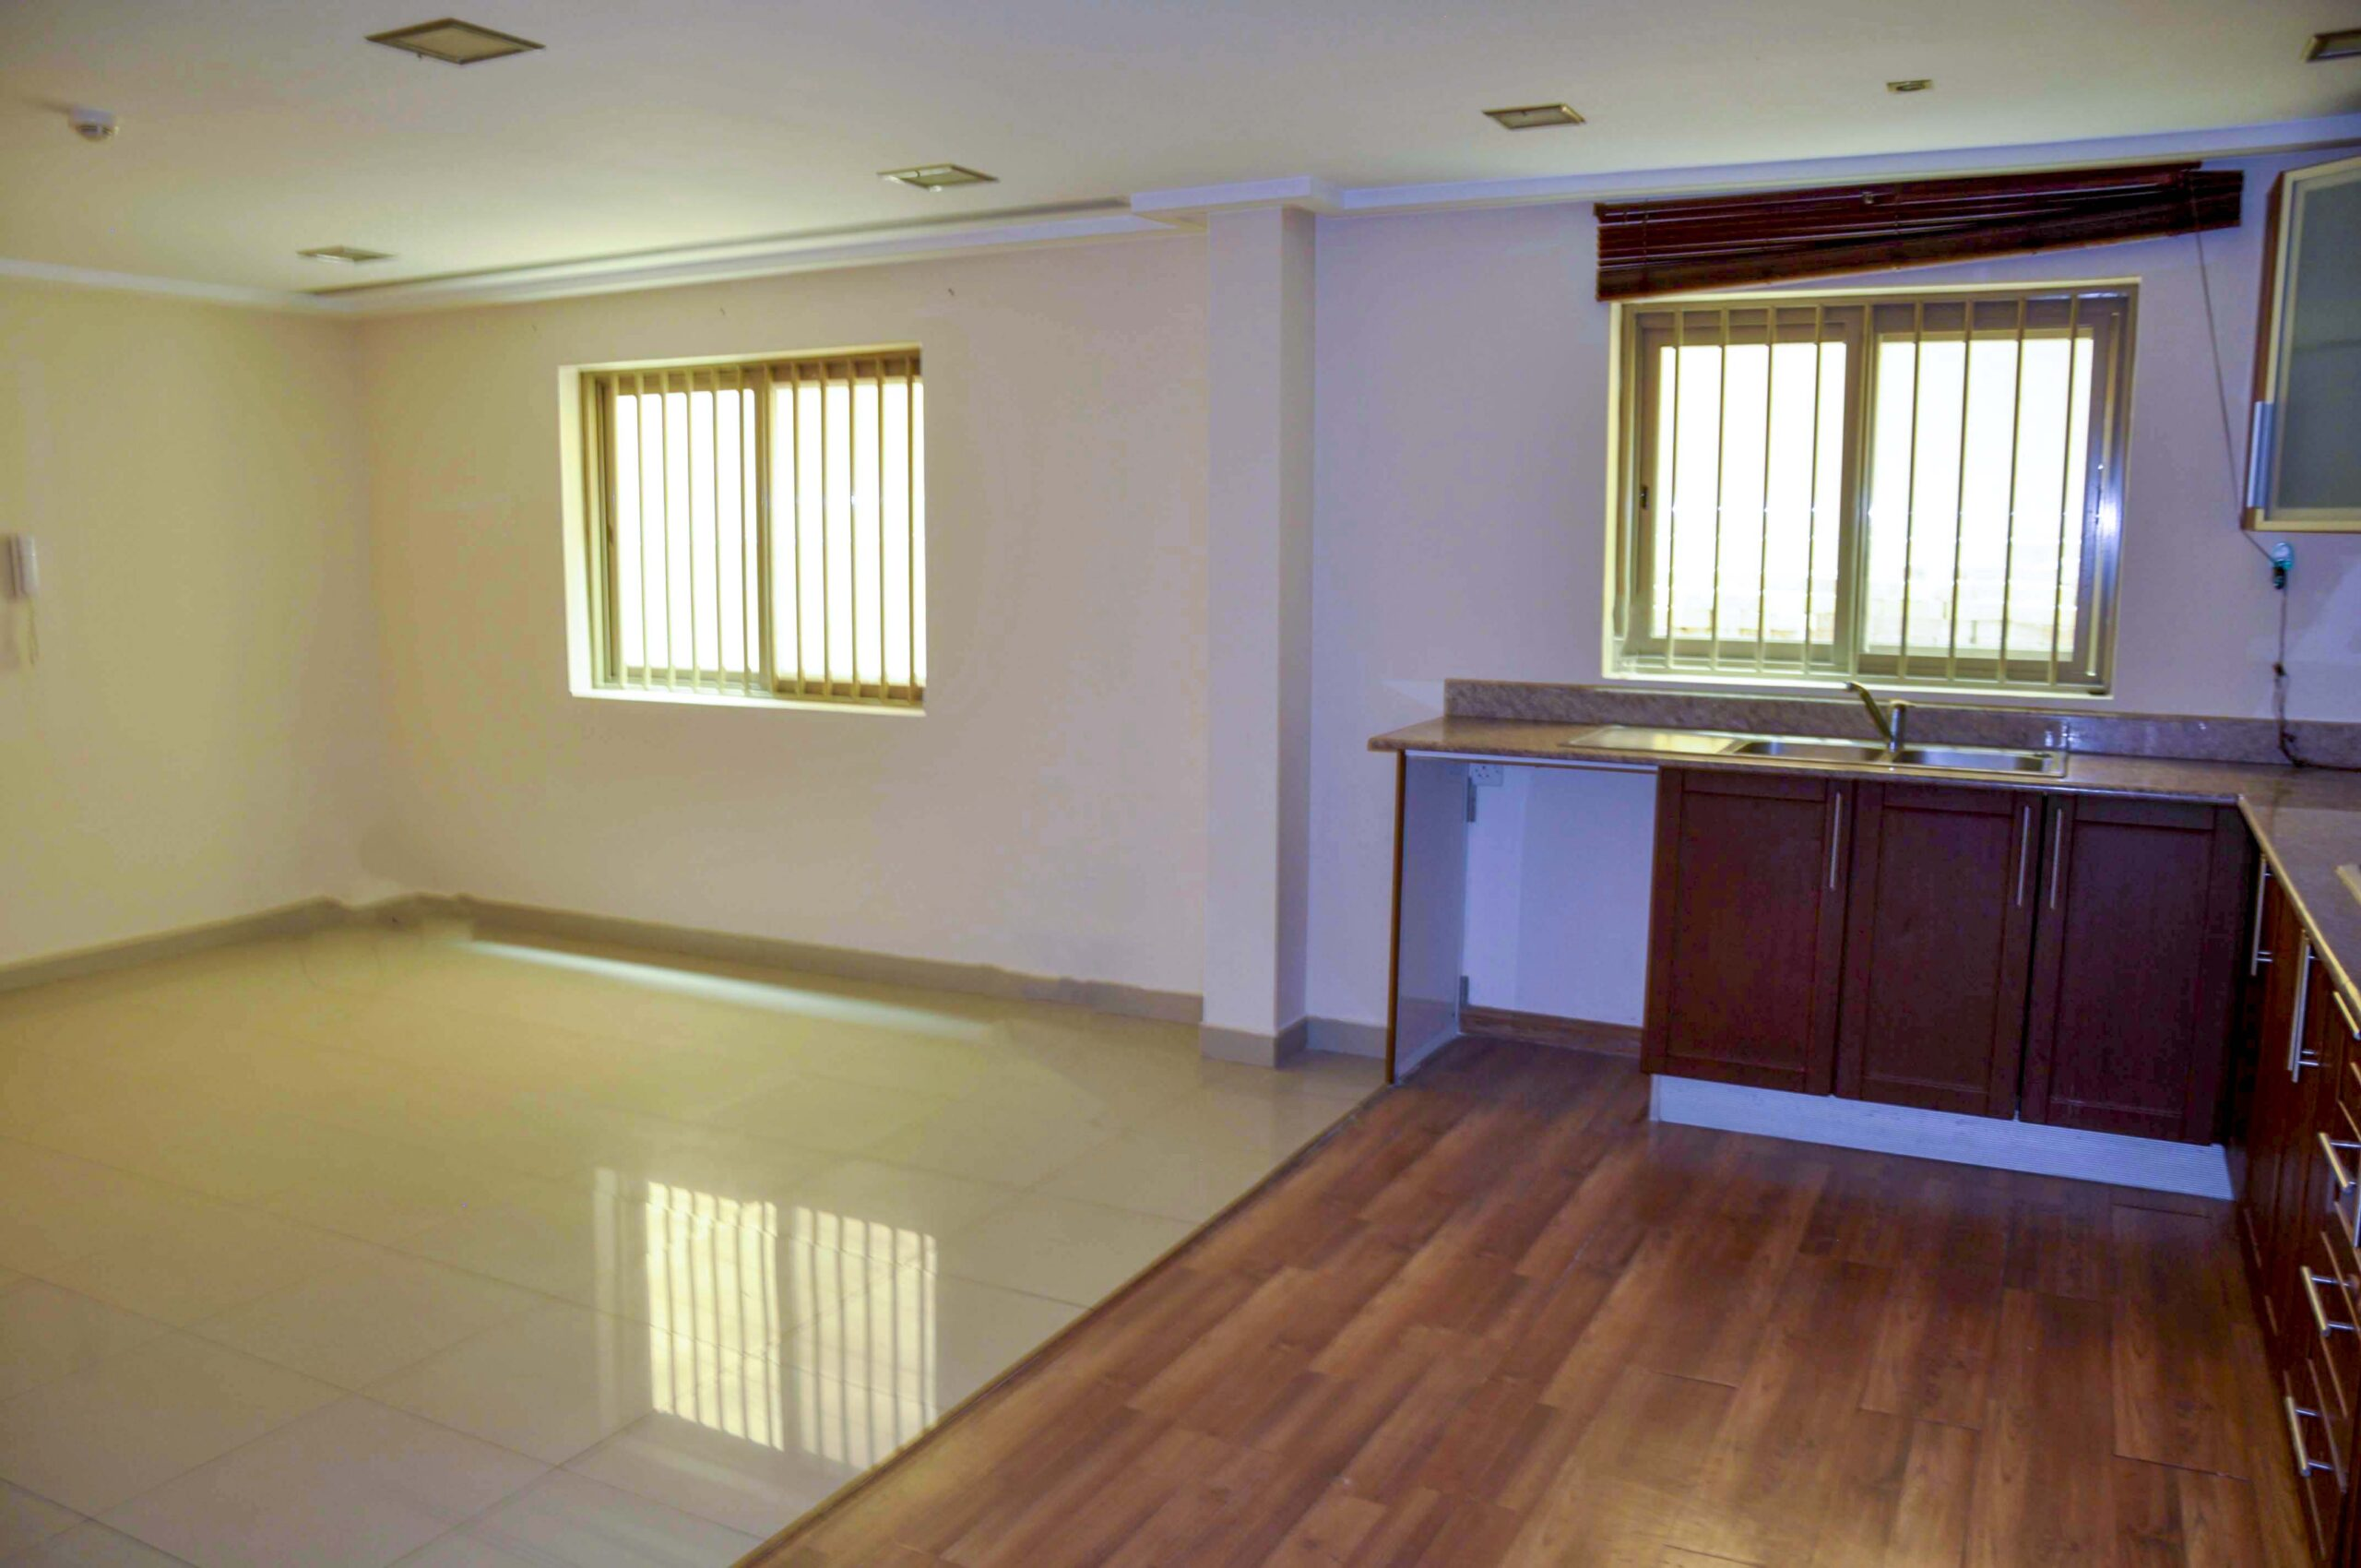 Luxury flat for rent simi-furnished in Bu Quwah (Saraya 2) offered for BD 260 /- per month